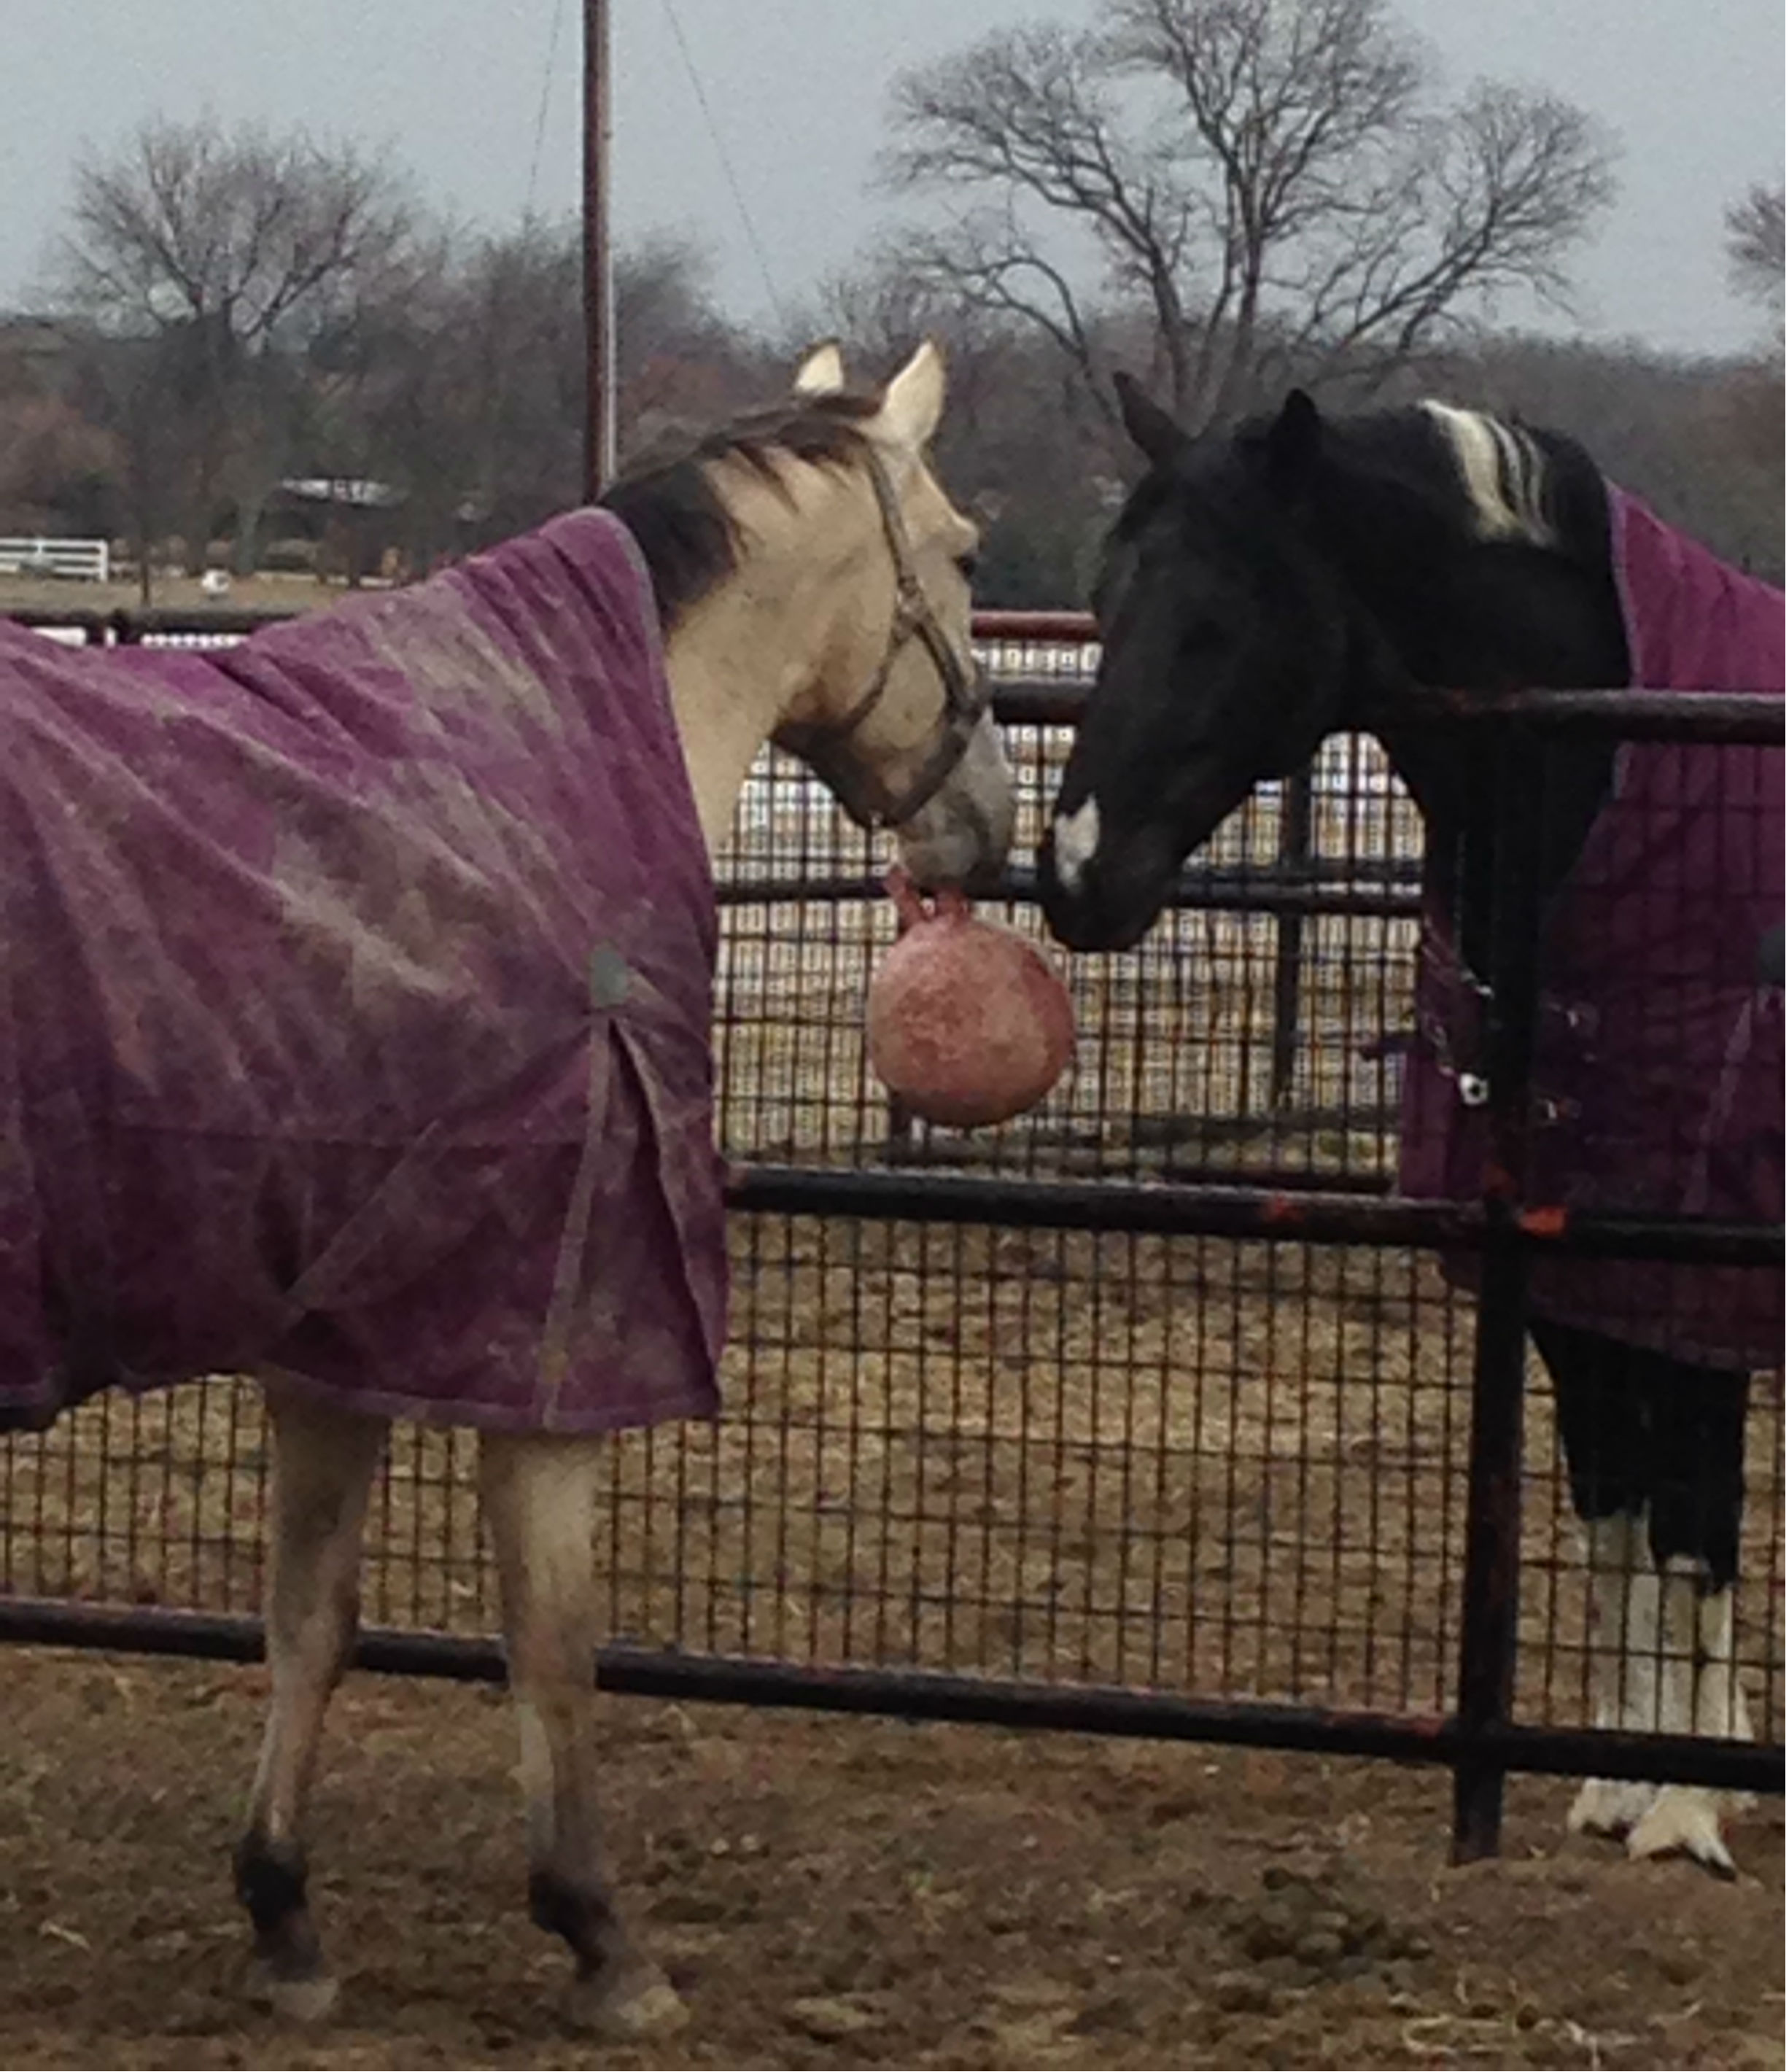 Premier horse boarding stables in the Dallas area | Whispering Farms